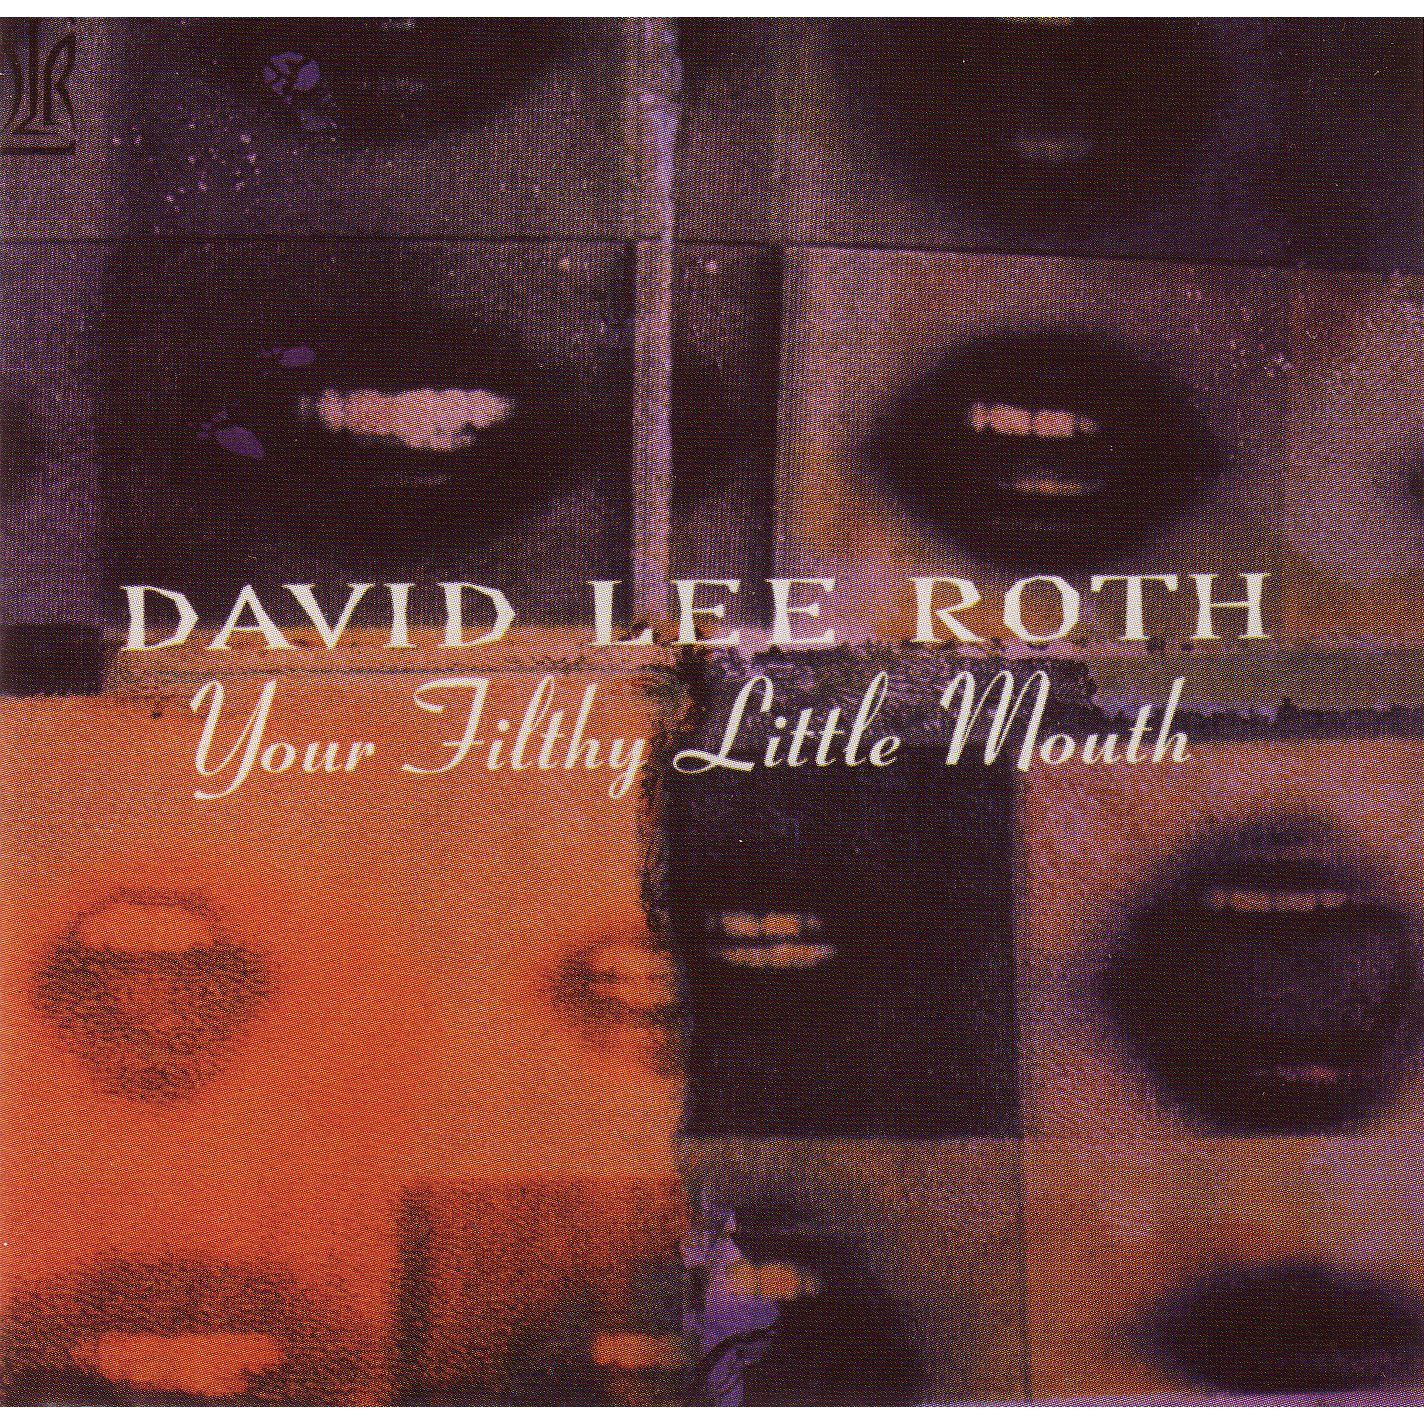 David Lee Roth - Your Filthy Little Mouth CD